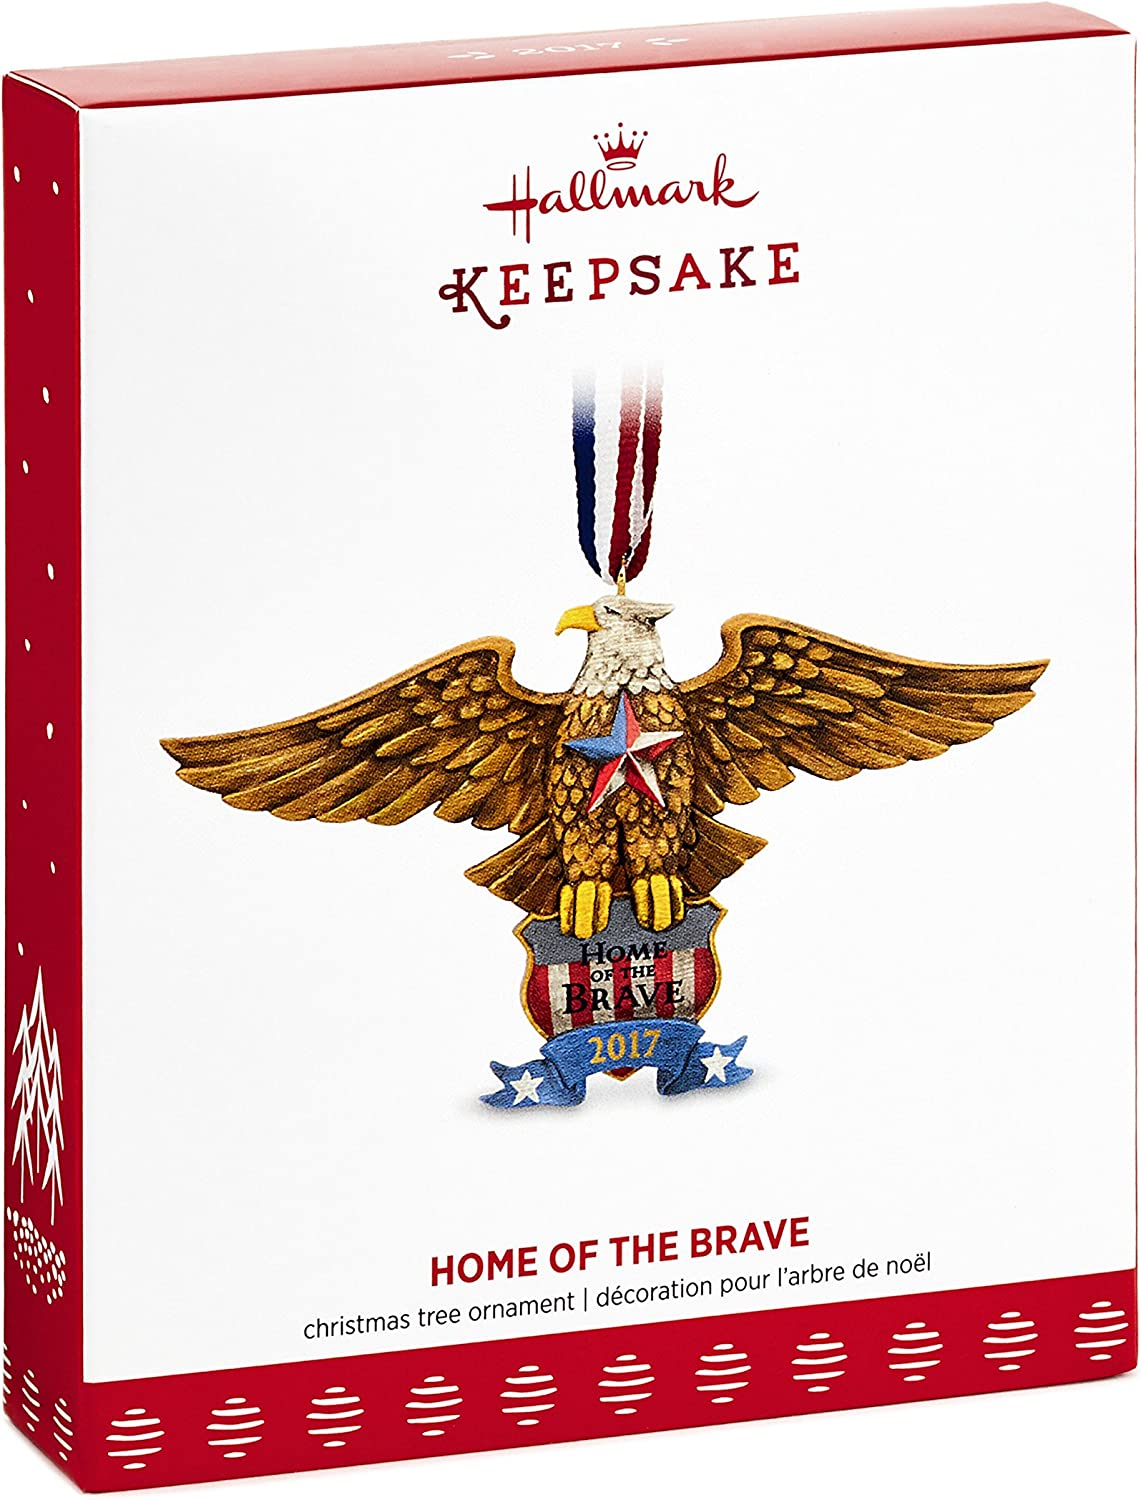 HOME OF THE BRAVE HALLMARK ORNAMENT 2017 MILITARY DATED~SHIP NOW~FREE SHIP IN US